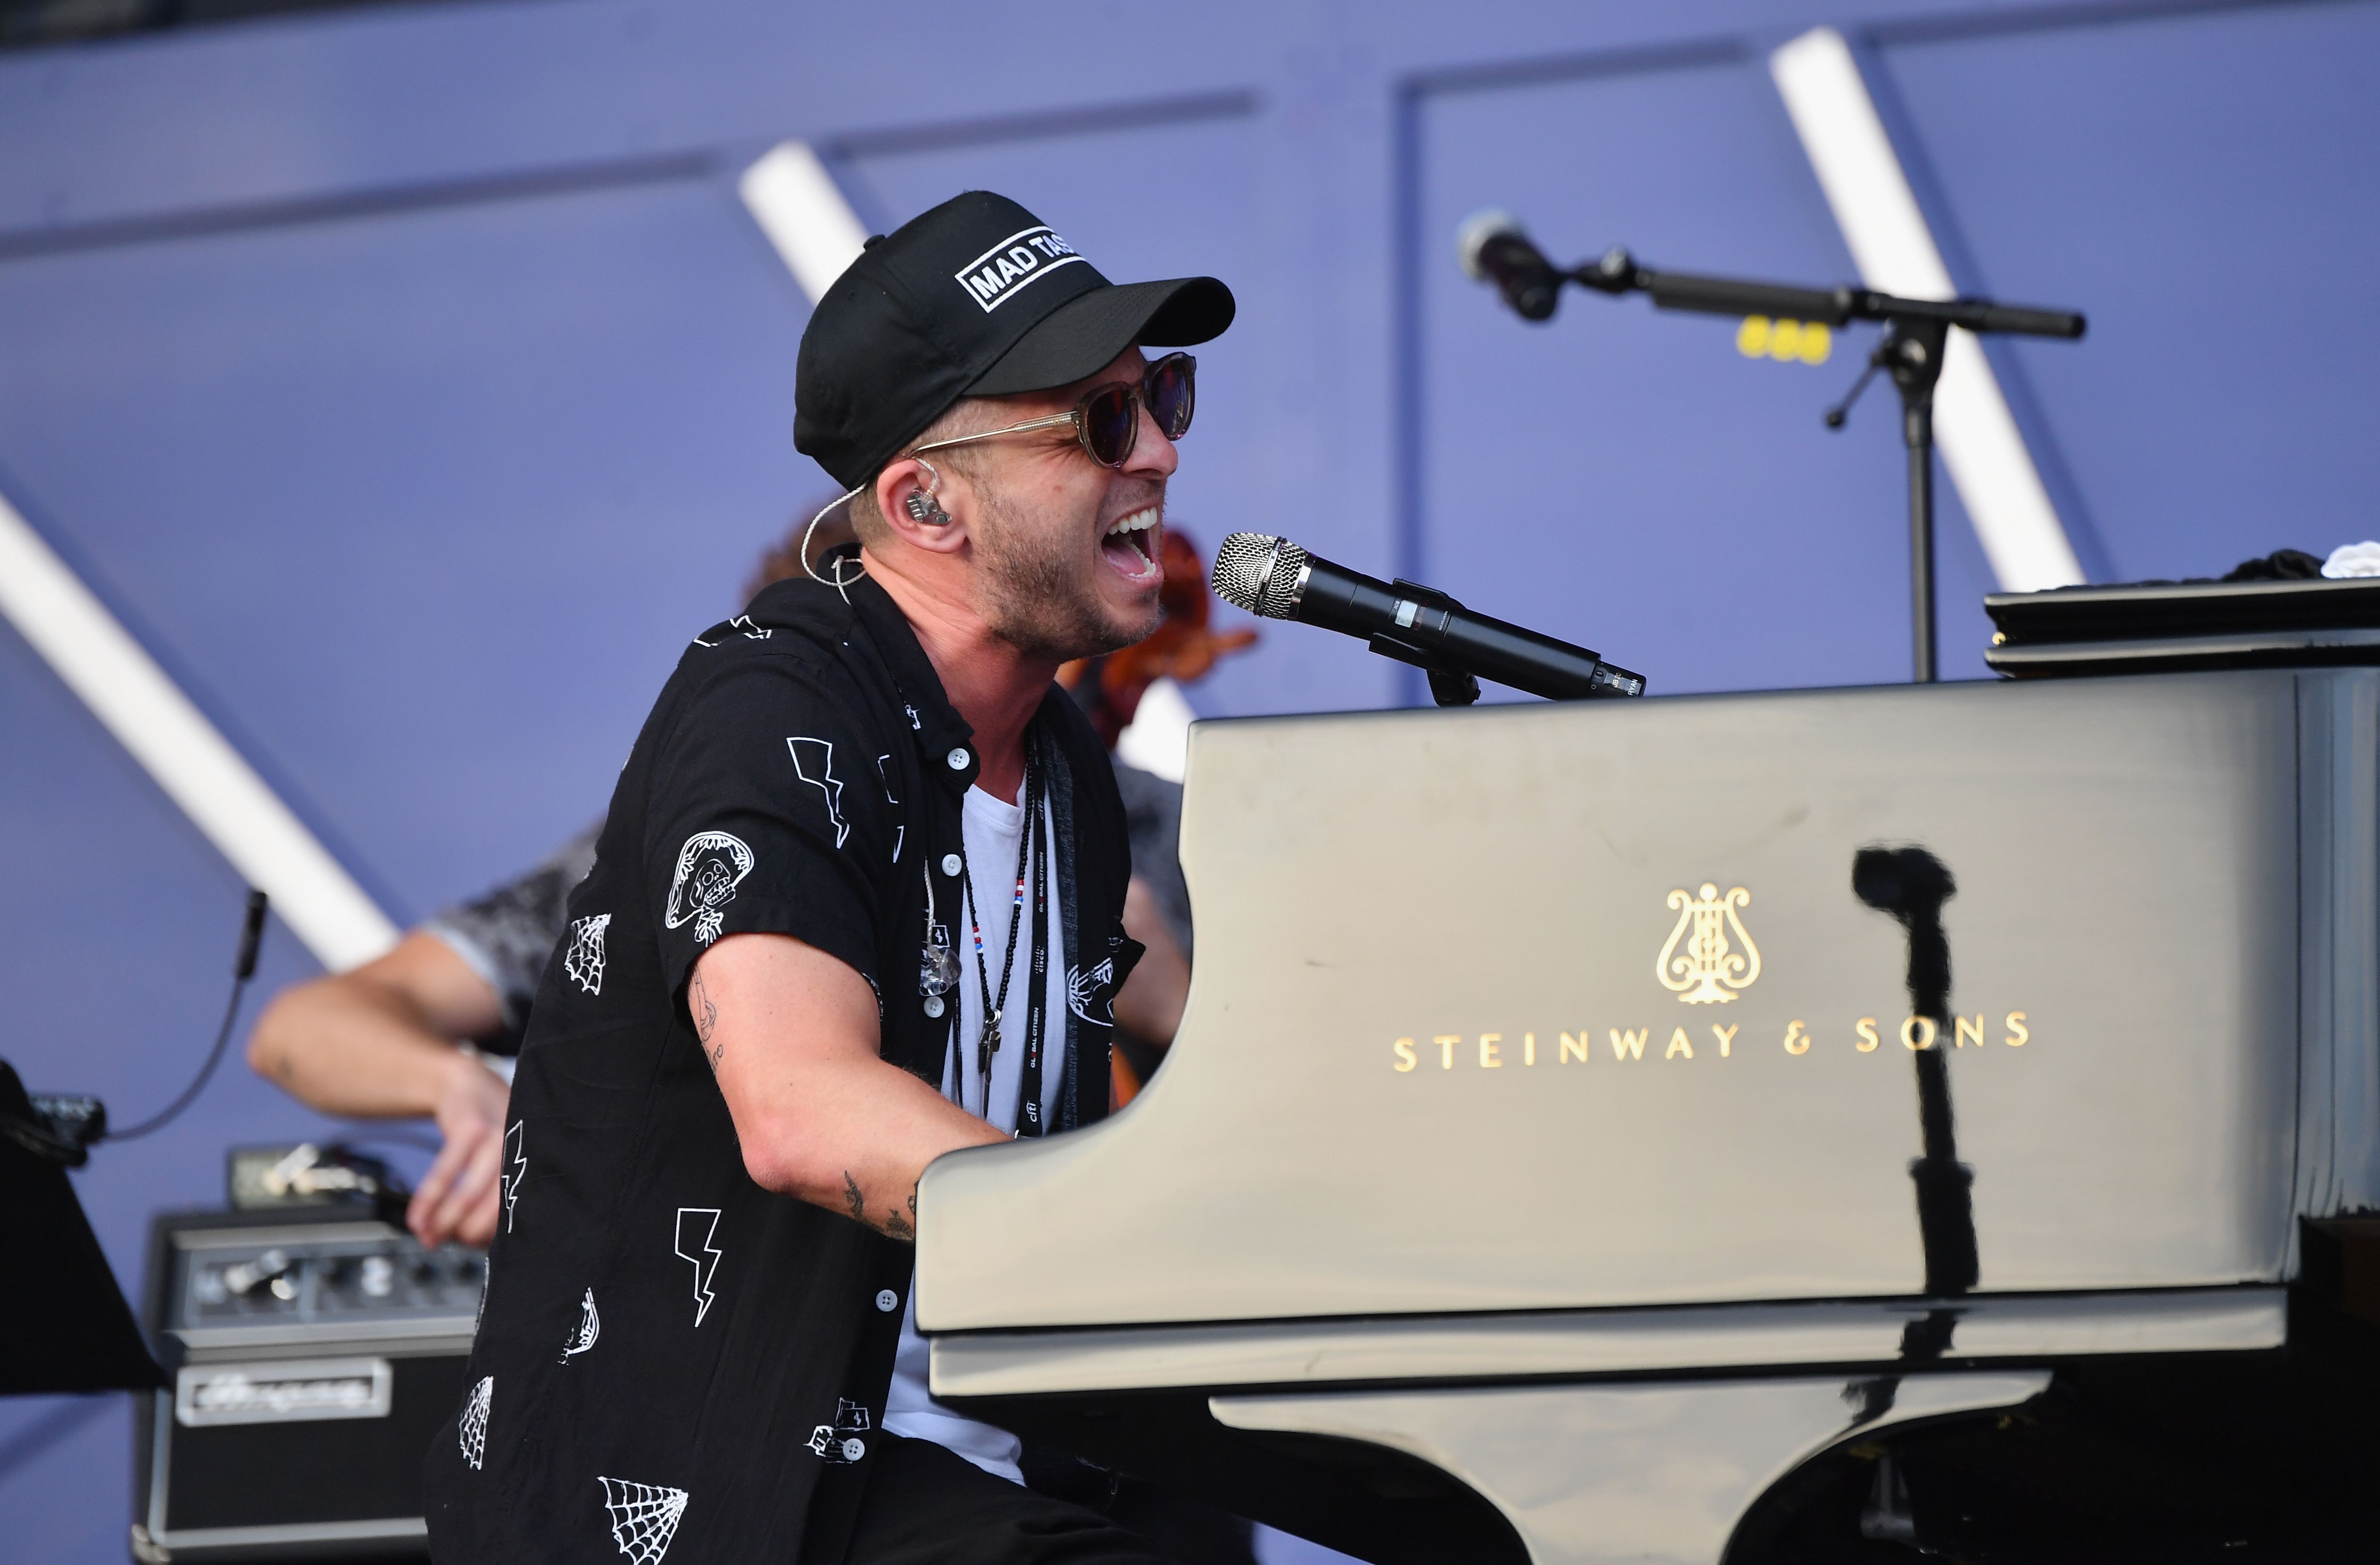 US singer Ryan Tedder of OneRepublic performs onstage at the 2019 Global Citizen Festival: Power The Movement in Central Park in New York on September 28, 2019. (Photo by Angela Weiss / AFP)        (Photo credit should read ANGELA WEISS/AFP/Getty Images)